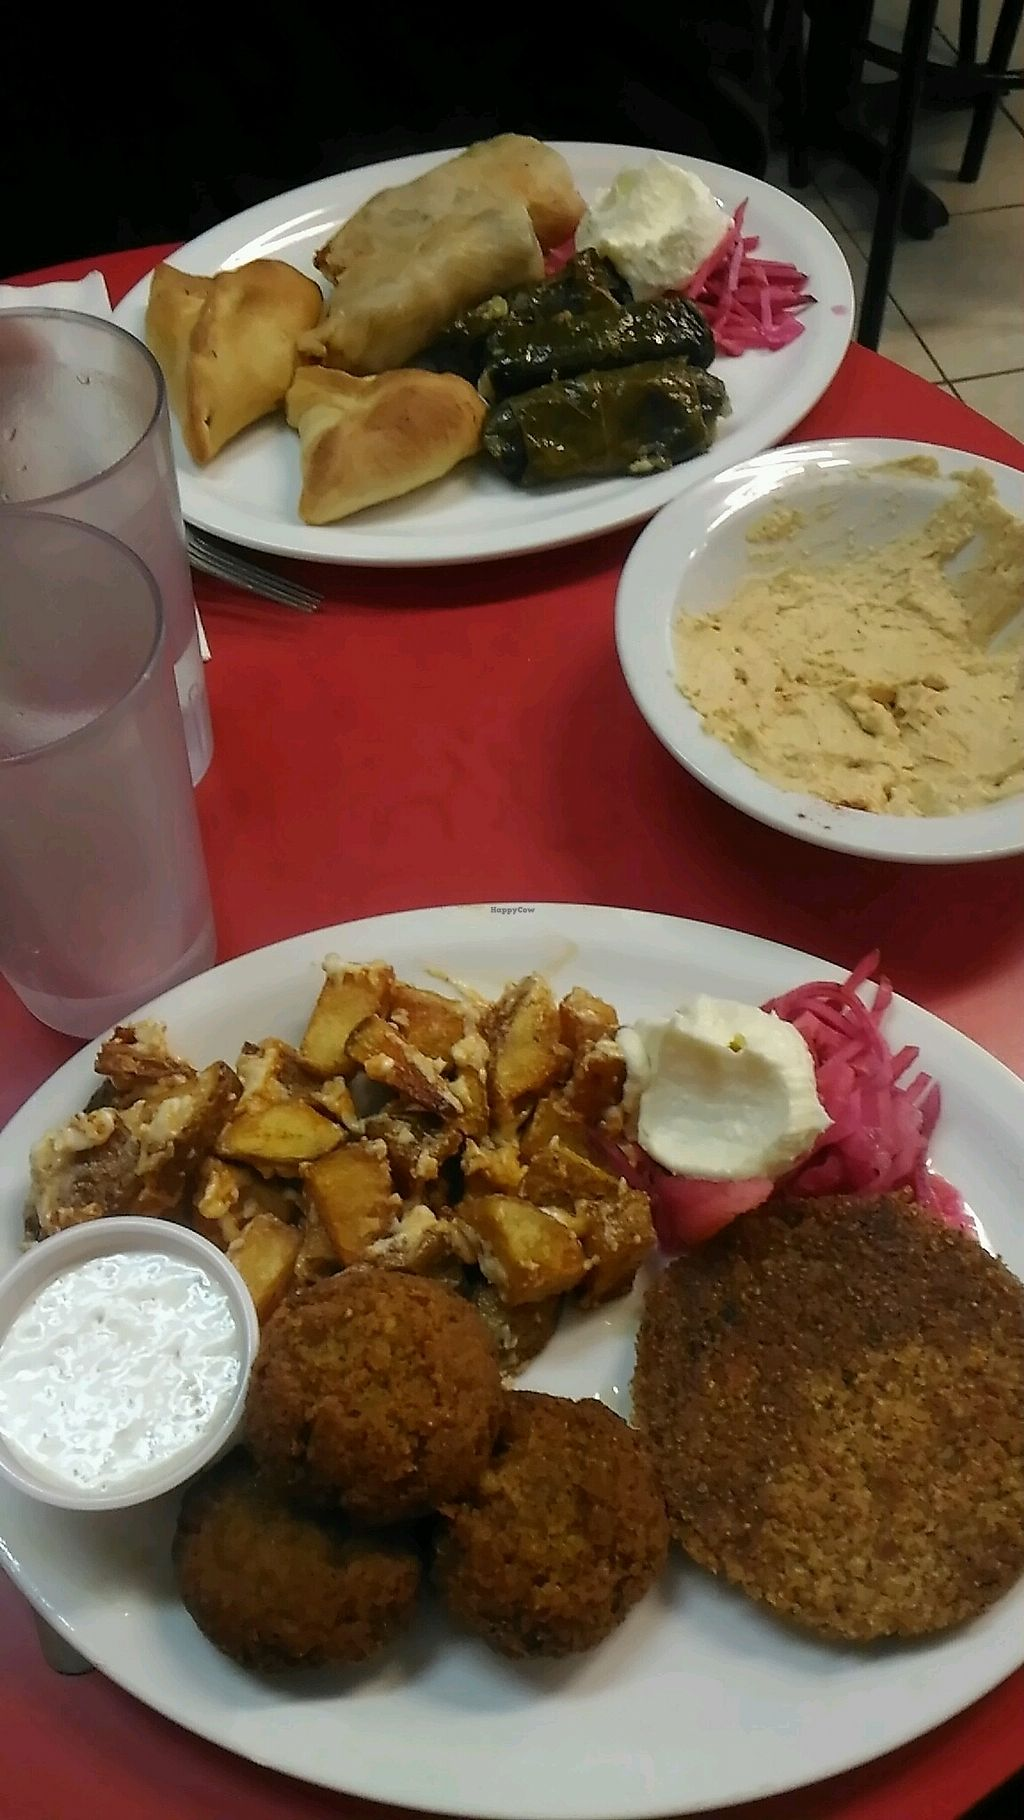 """Photo of Mary's Place Cafe  by <a href=""""/members/profile/QuothTheRaven"""">QuothTheRaven</a> <br/>vegan <br/> February 11, 2018  - <a href='/contact/abuse/image/24432/358036'>Report</a>"""